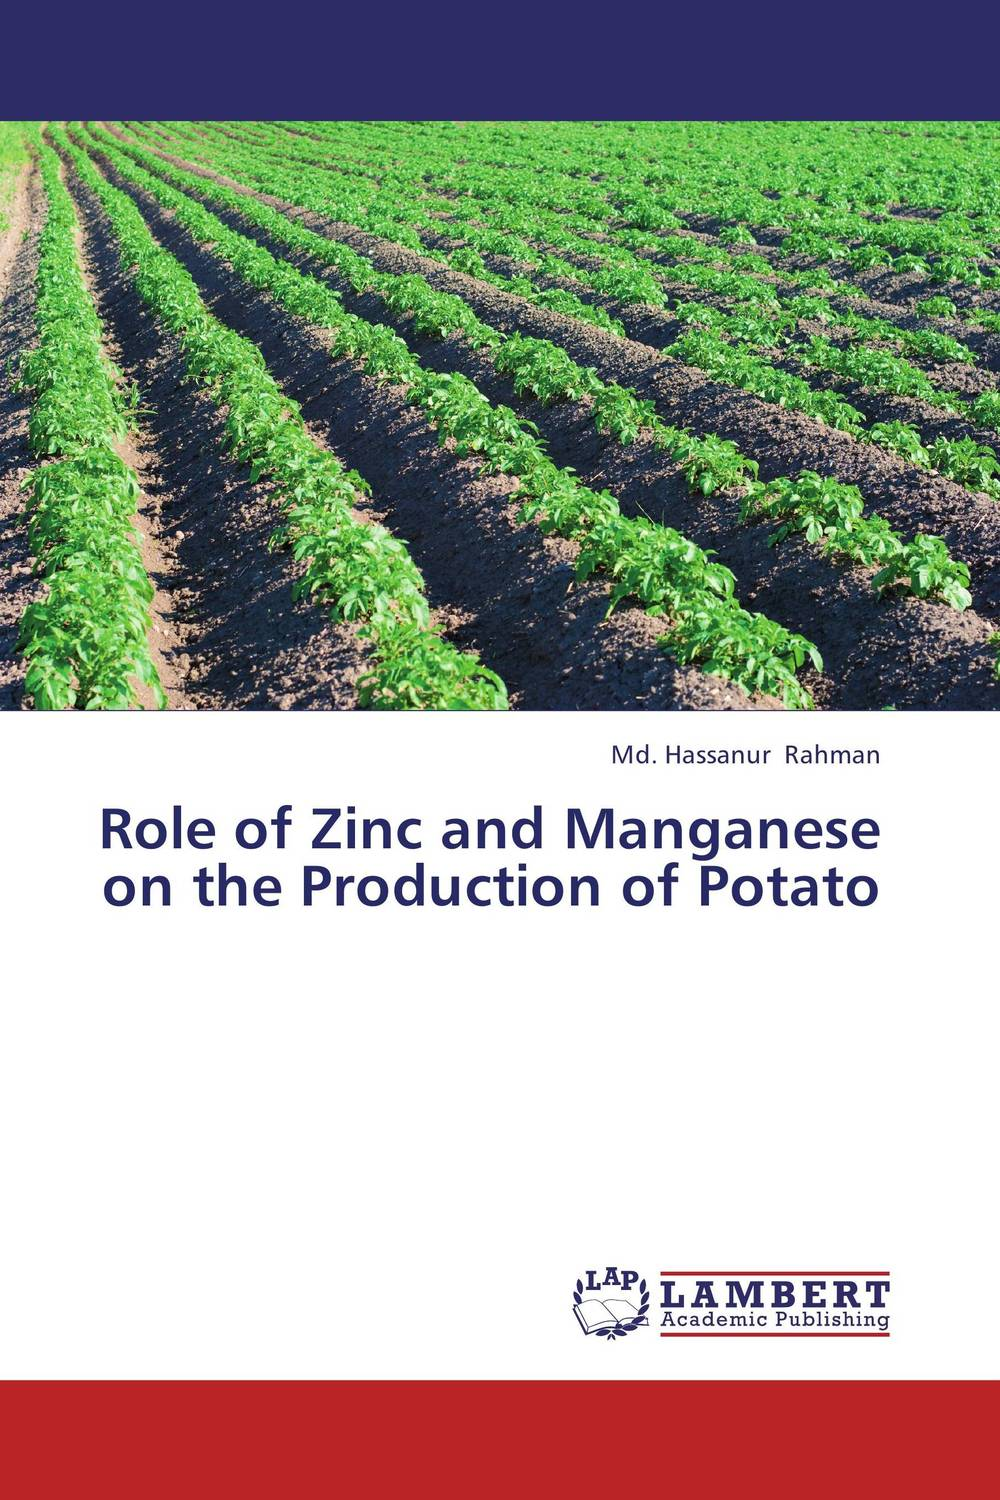 Role of Zinc and Manganese on the Production of Potato the role of evaluation as a mechanism for advancing principal practice